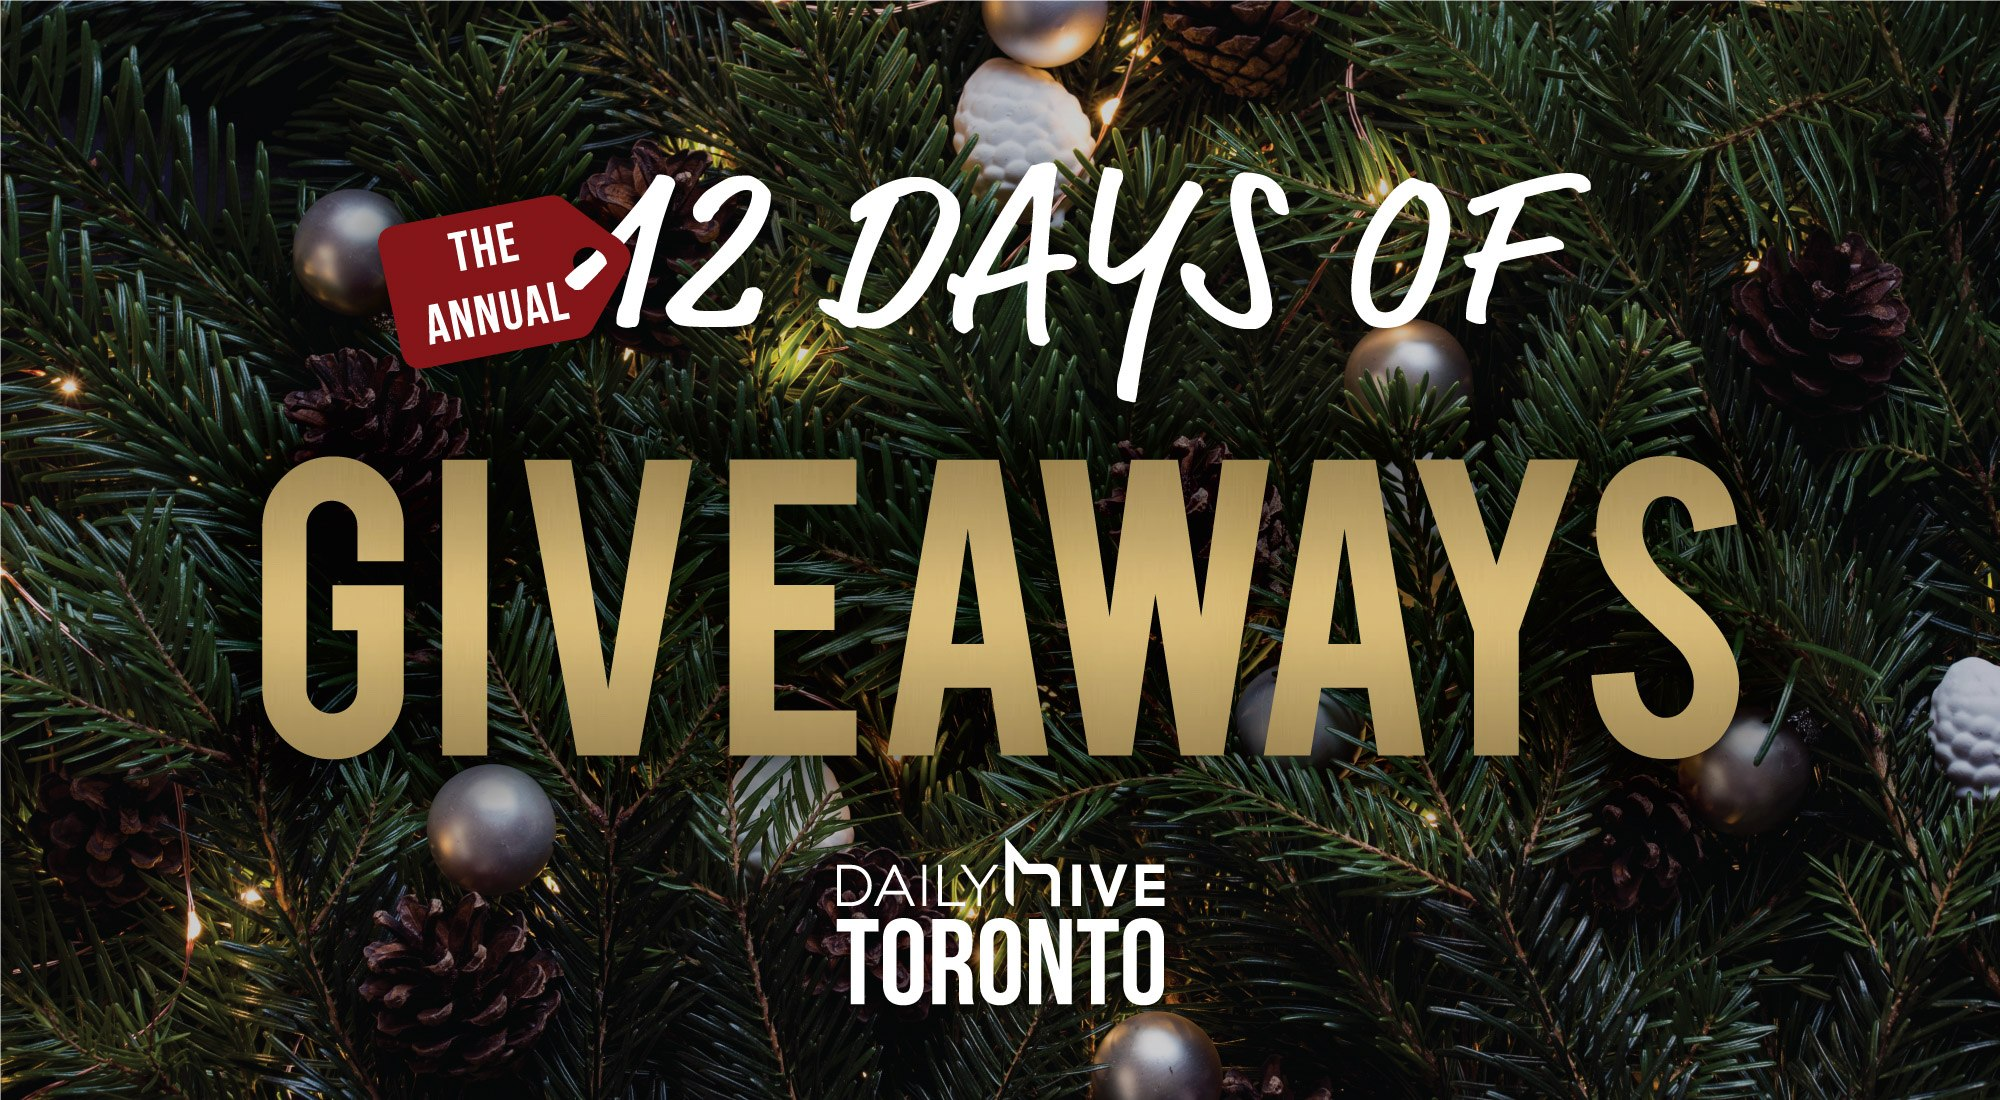 12 days of giveaways toronto feature image